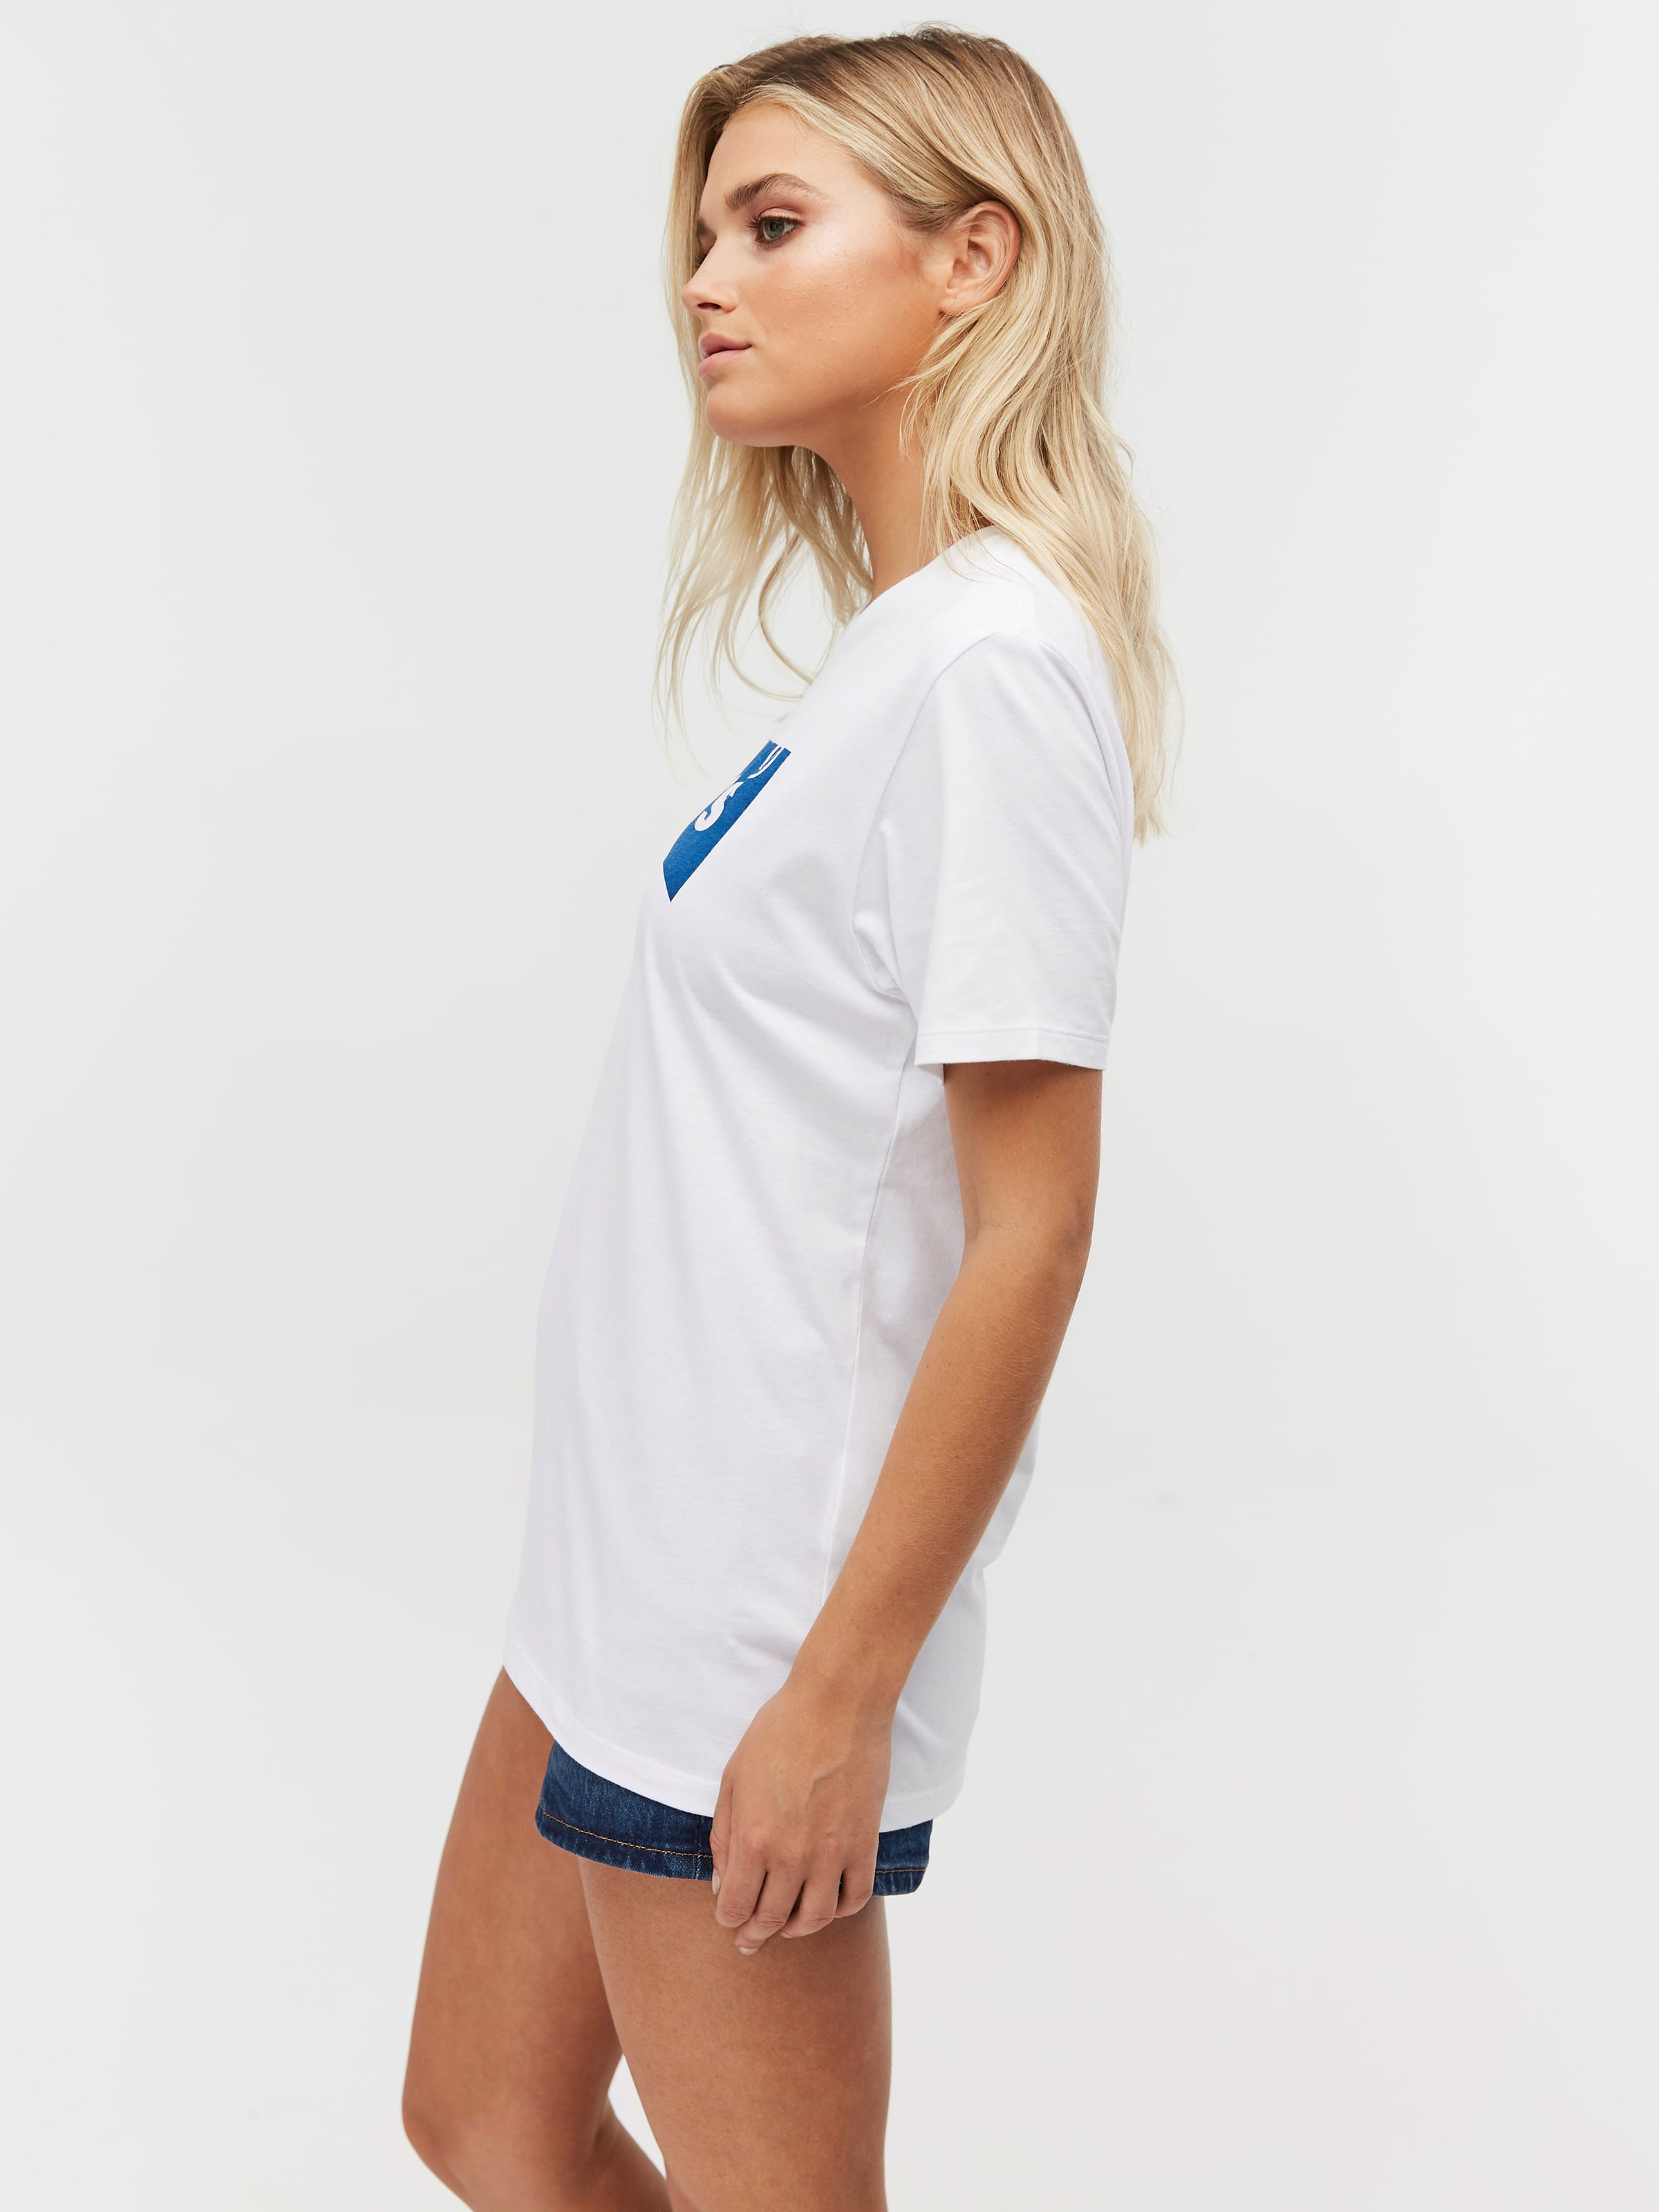 7fac51e584c1d ... Image for Levis Unisex Batwing In White from Just Jeans